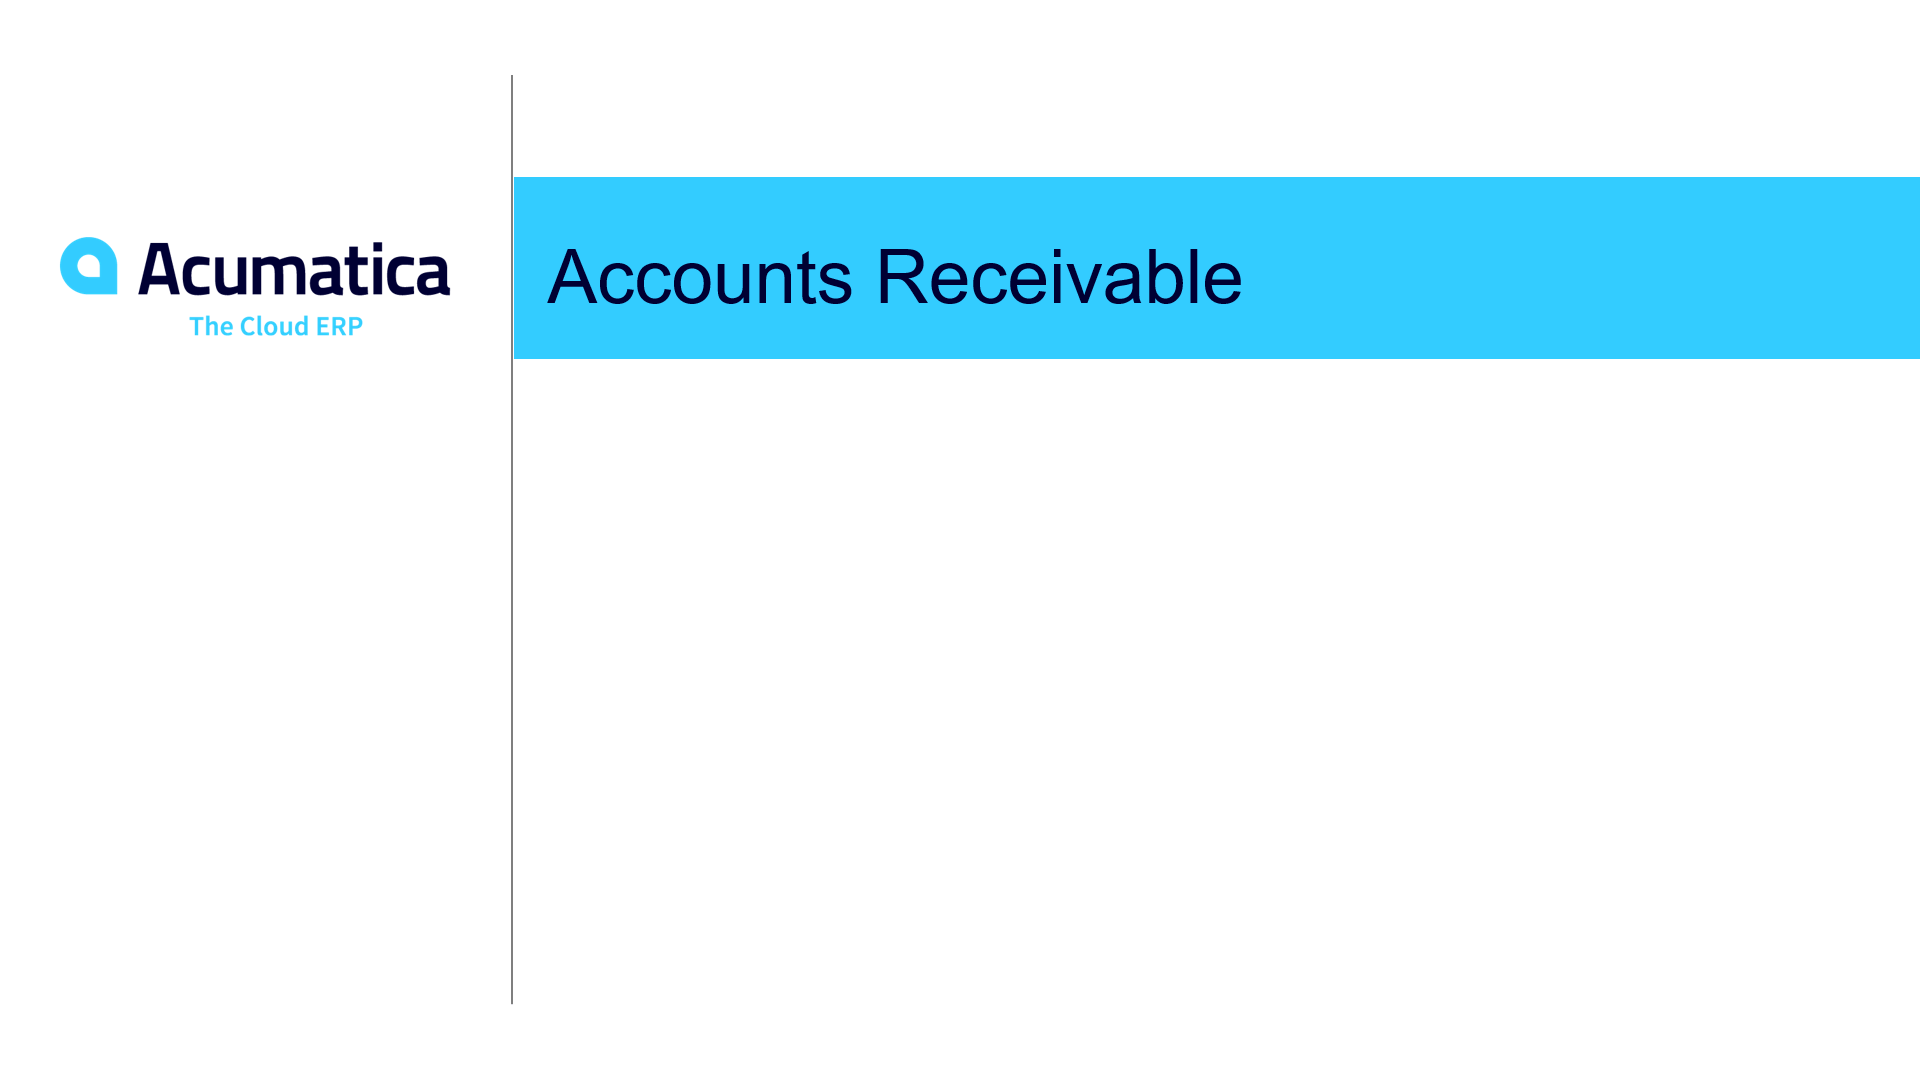 Accounts Receivable Overview